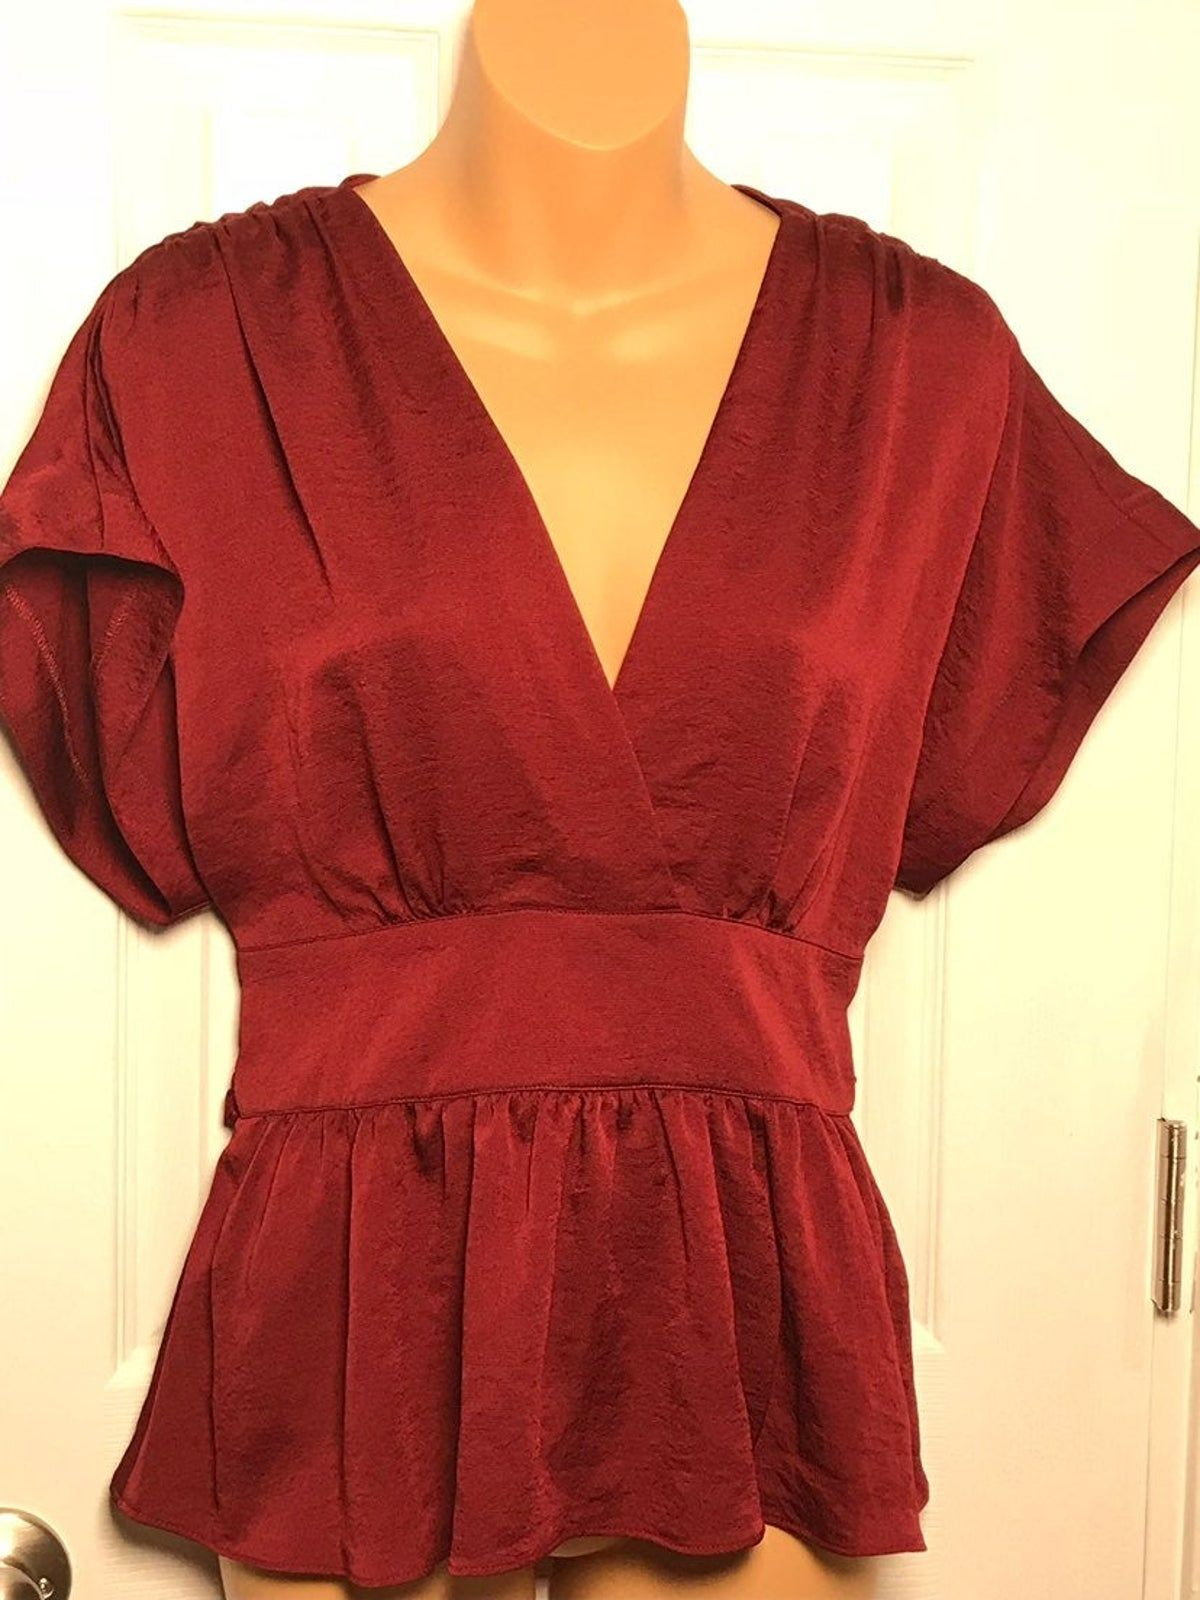 Express. NWT.Red low cut blouse w/ tie i